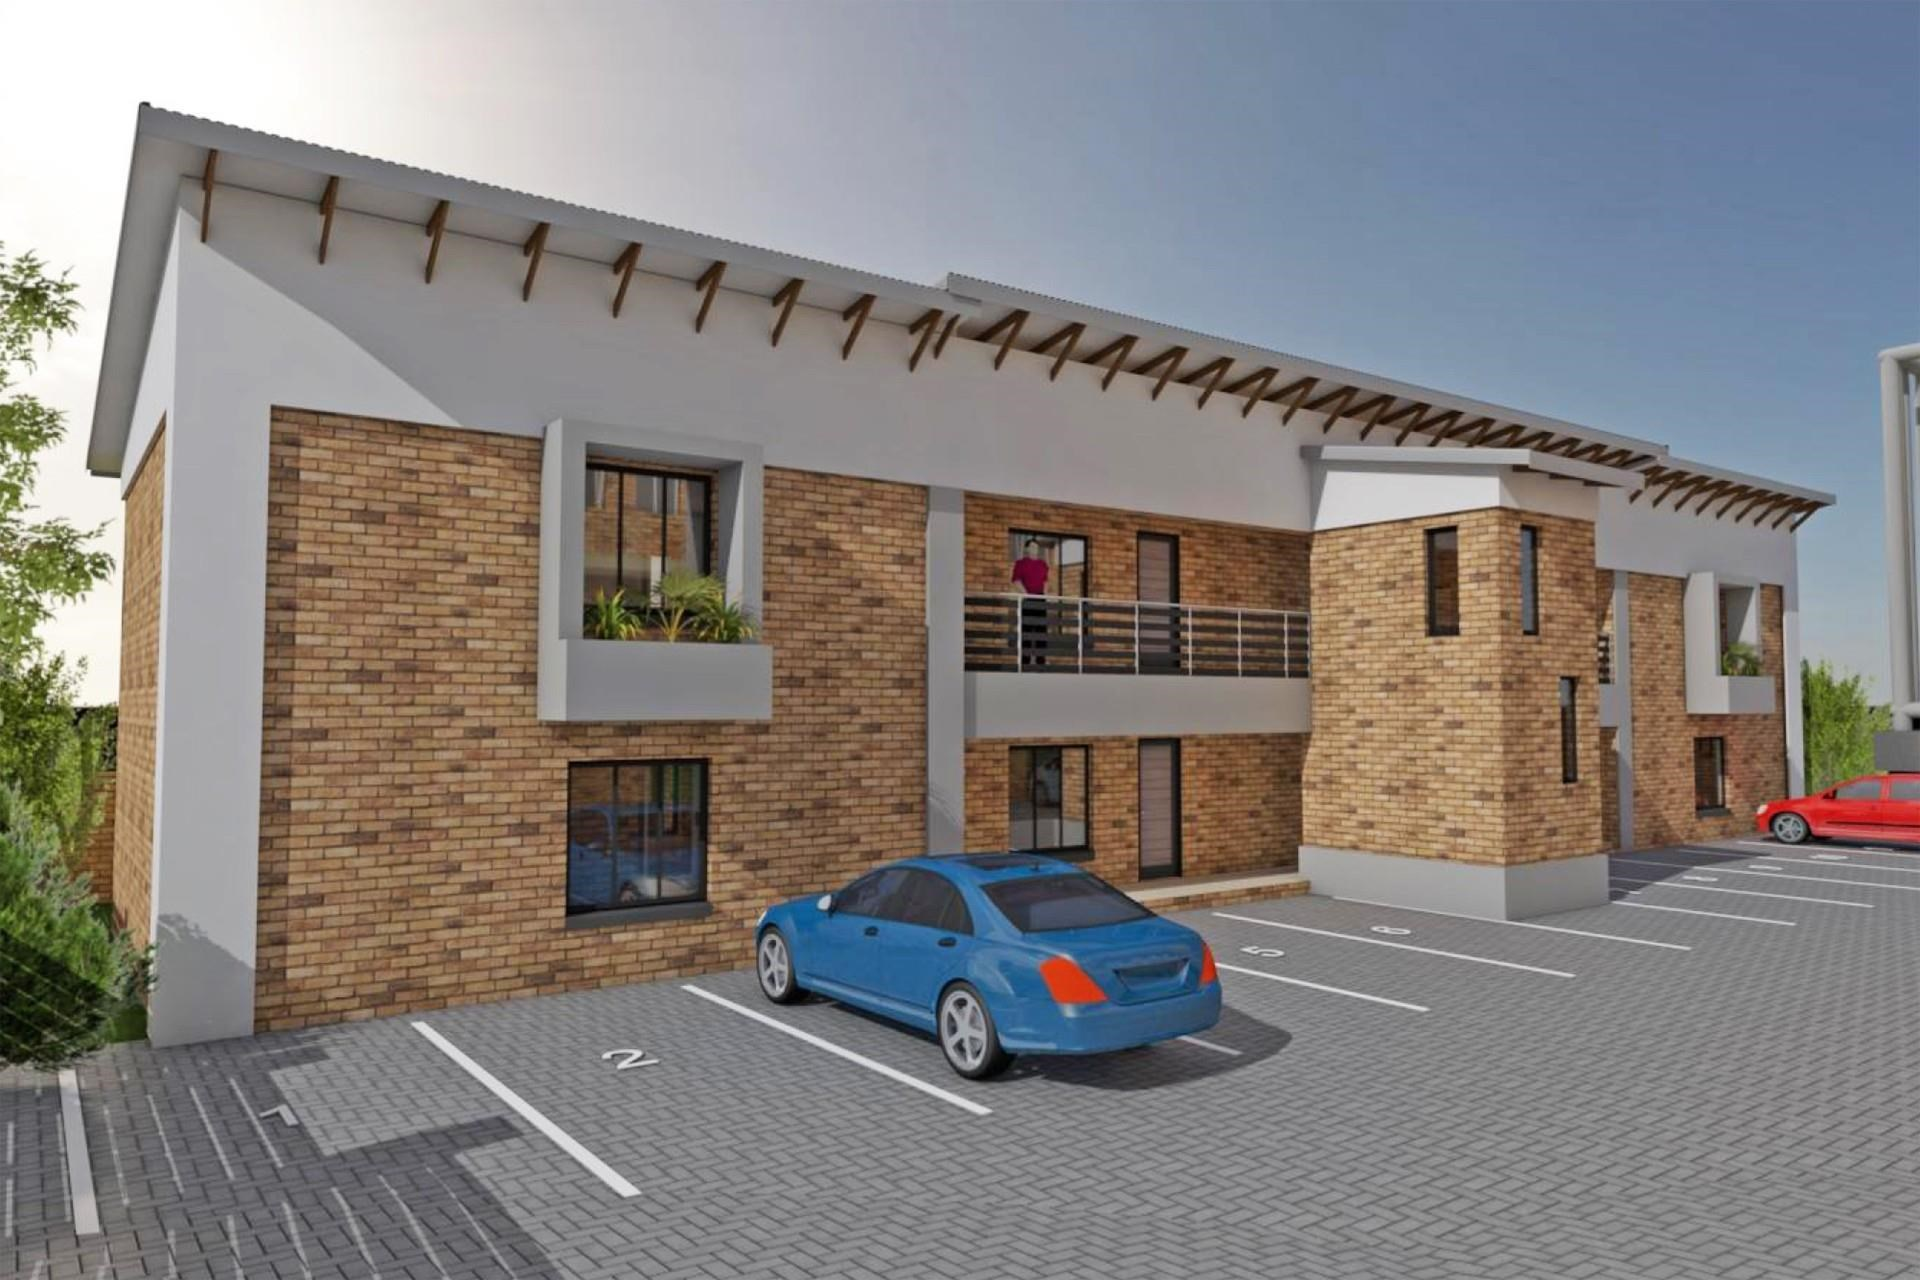 12 Bedroom House for Sale in Sonheuwel